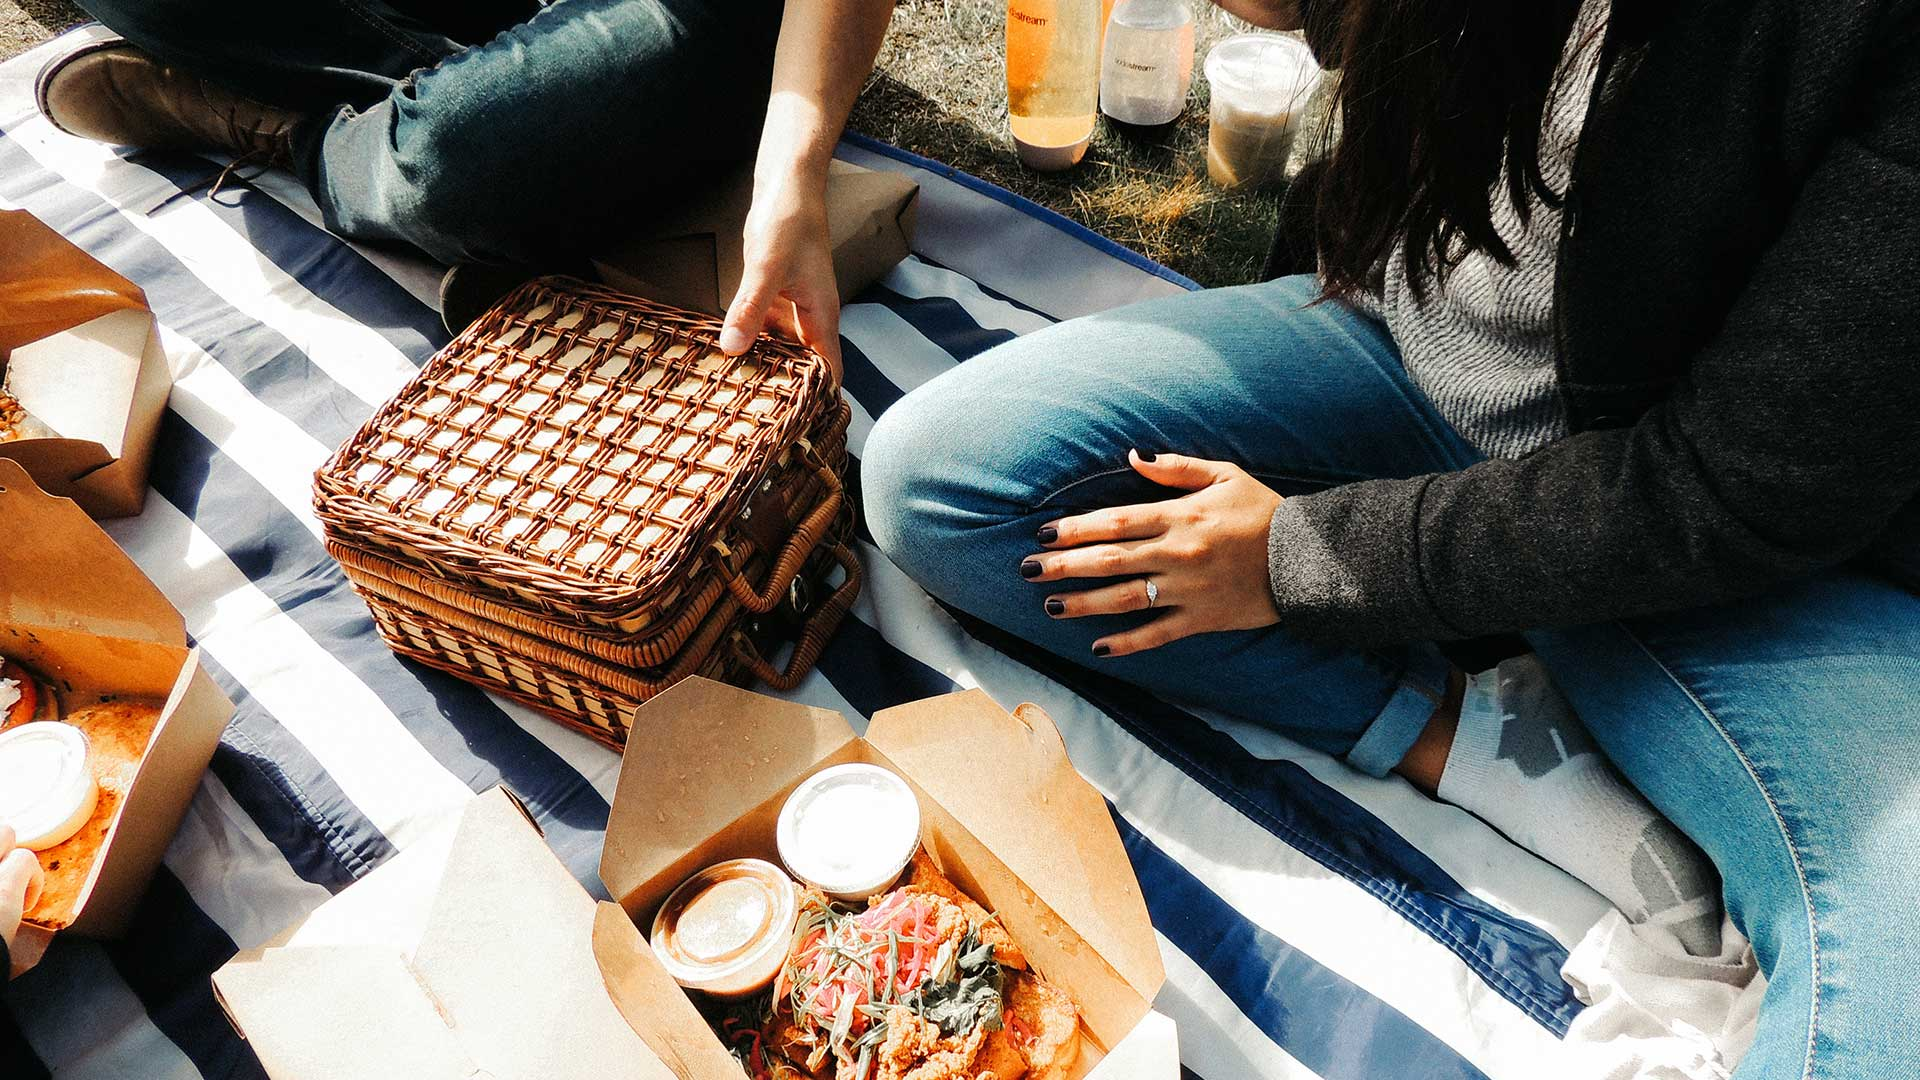 Picnic with food waste